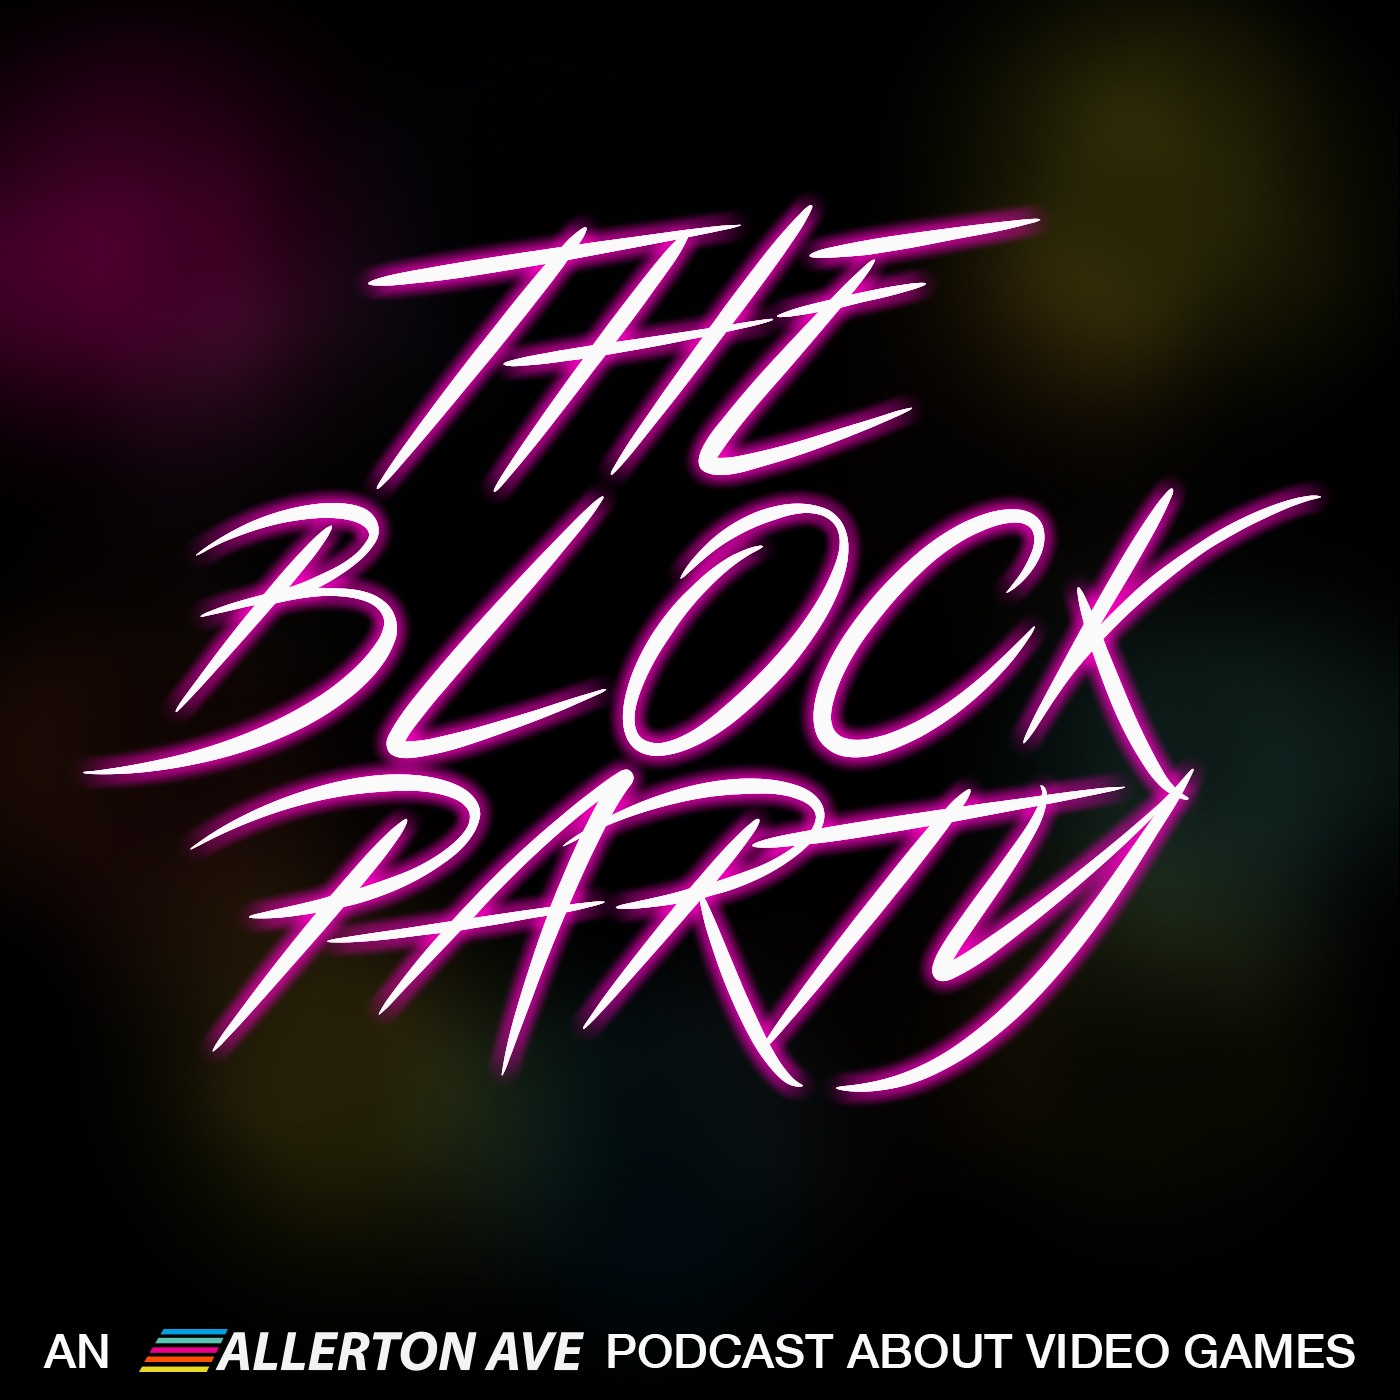 The Block Party - Allerton Ave